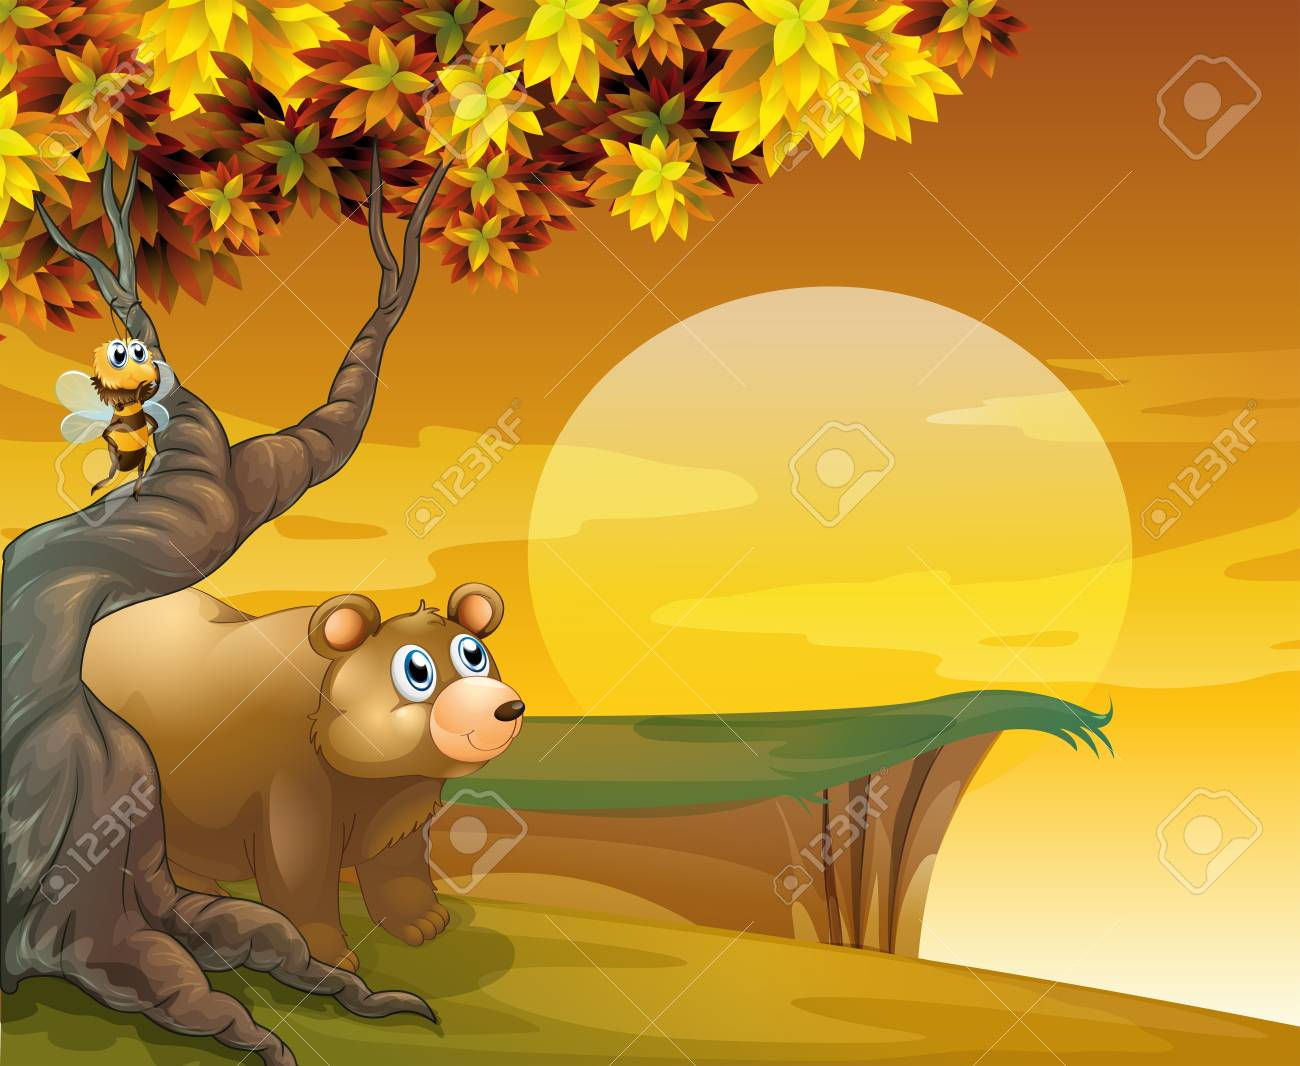 Illustration of a bear and a bee looking at the sunset Stock Vector - 18053035